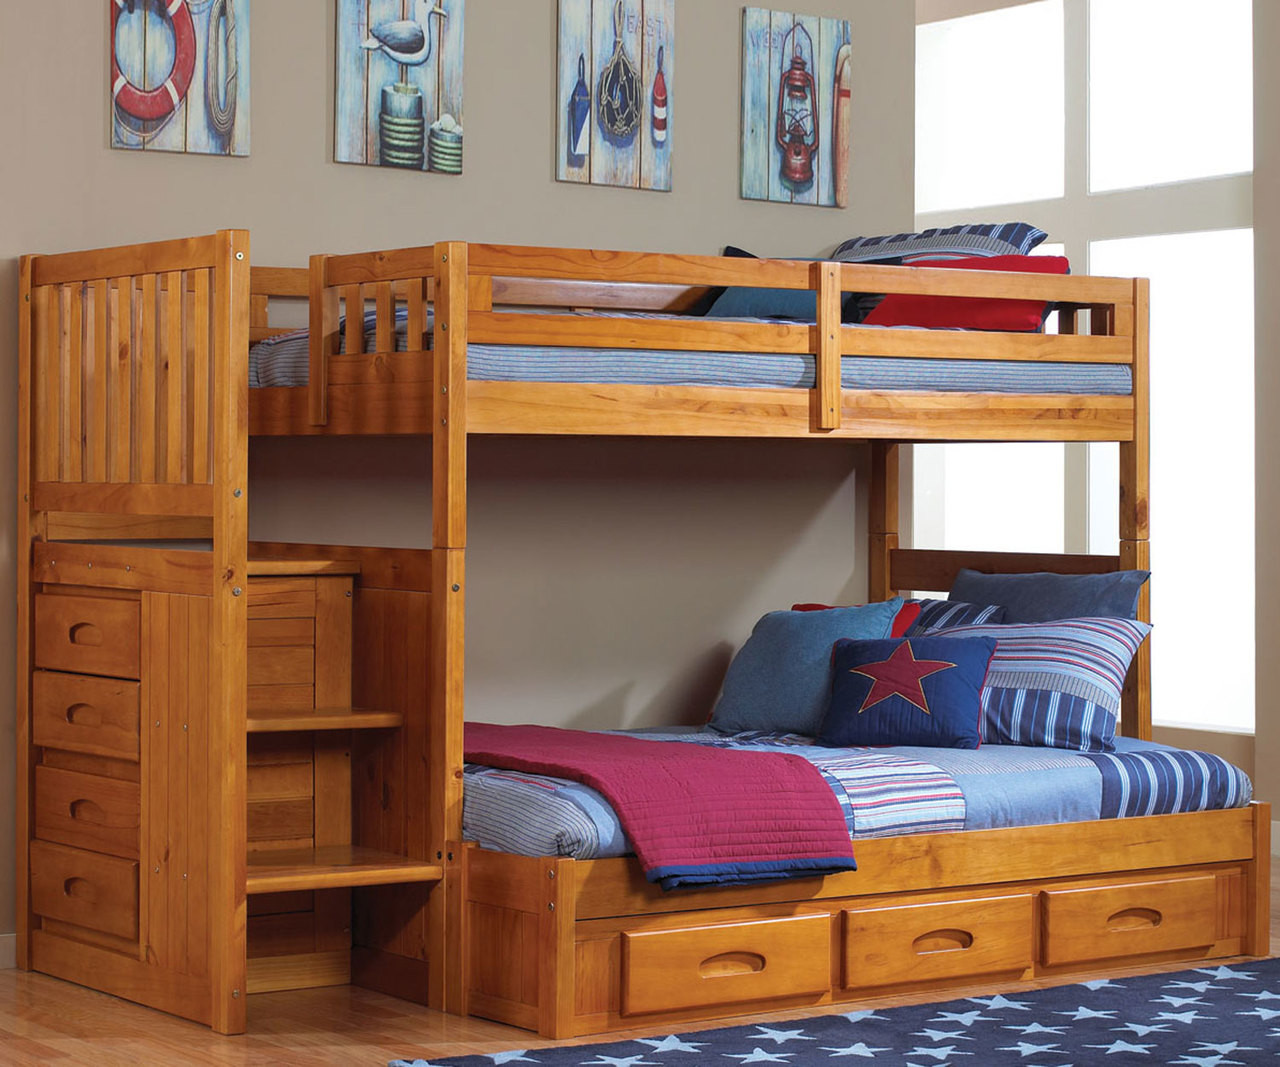 Picture of: Buy Honey Collection Mission Kids Bunk Beds With Stairs And Steps Discovery Stairstepper Kids Bunkbed Furniture Bedroom Sets With Stairs In Honey Wide Selection Of Honey Bunk Beds With